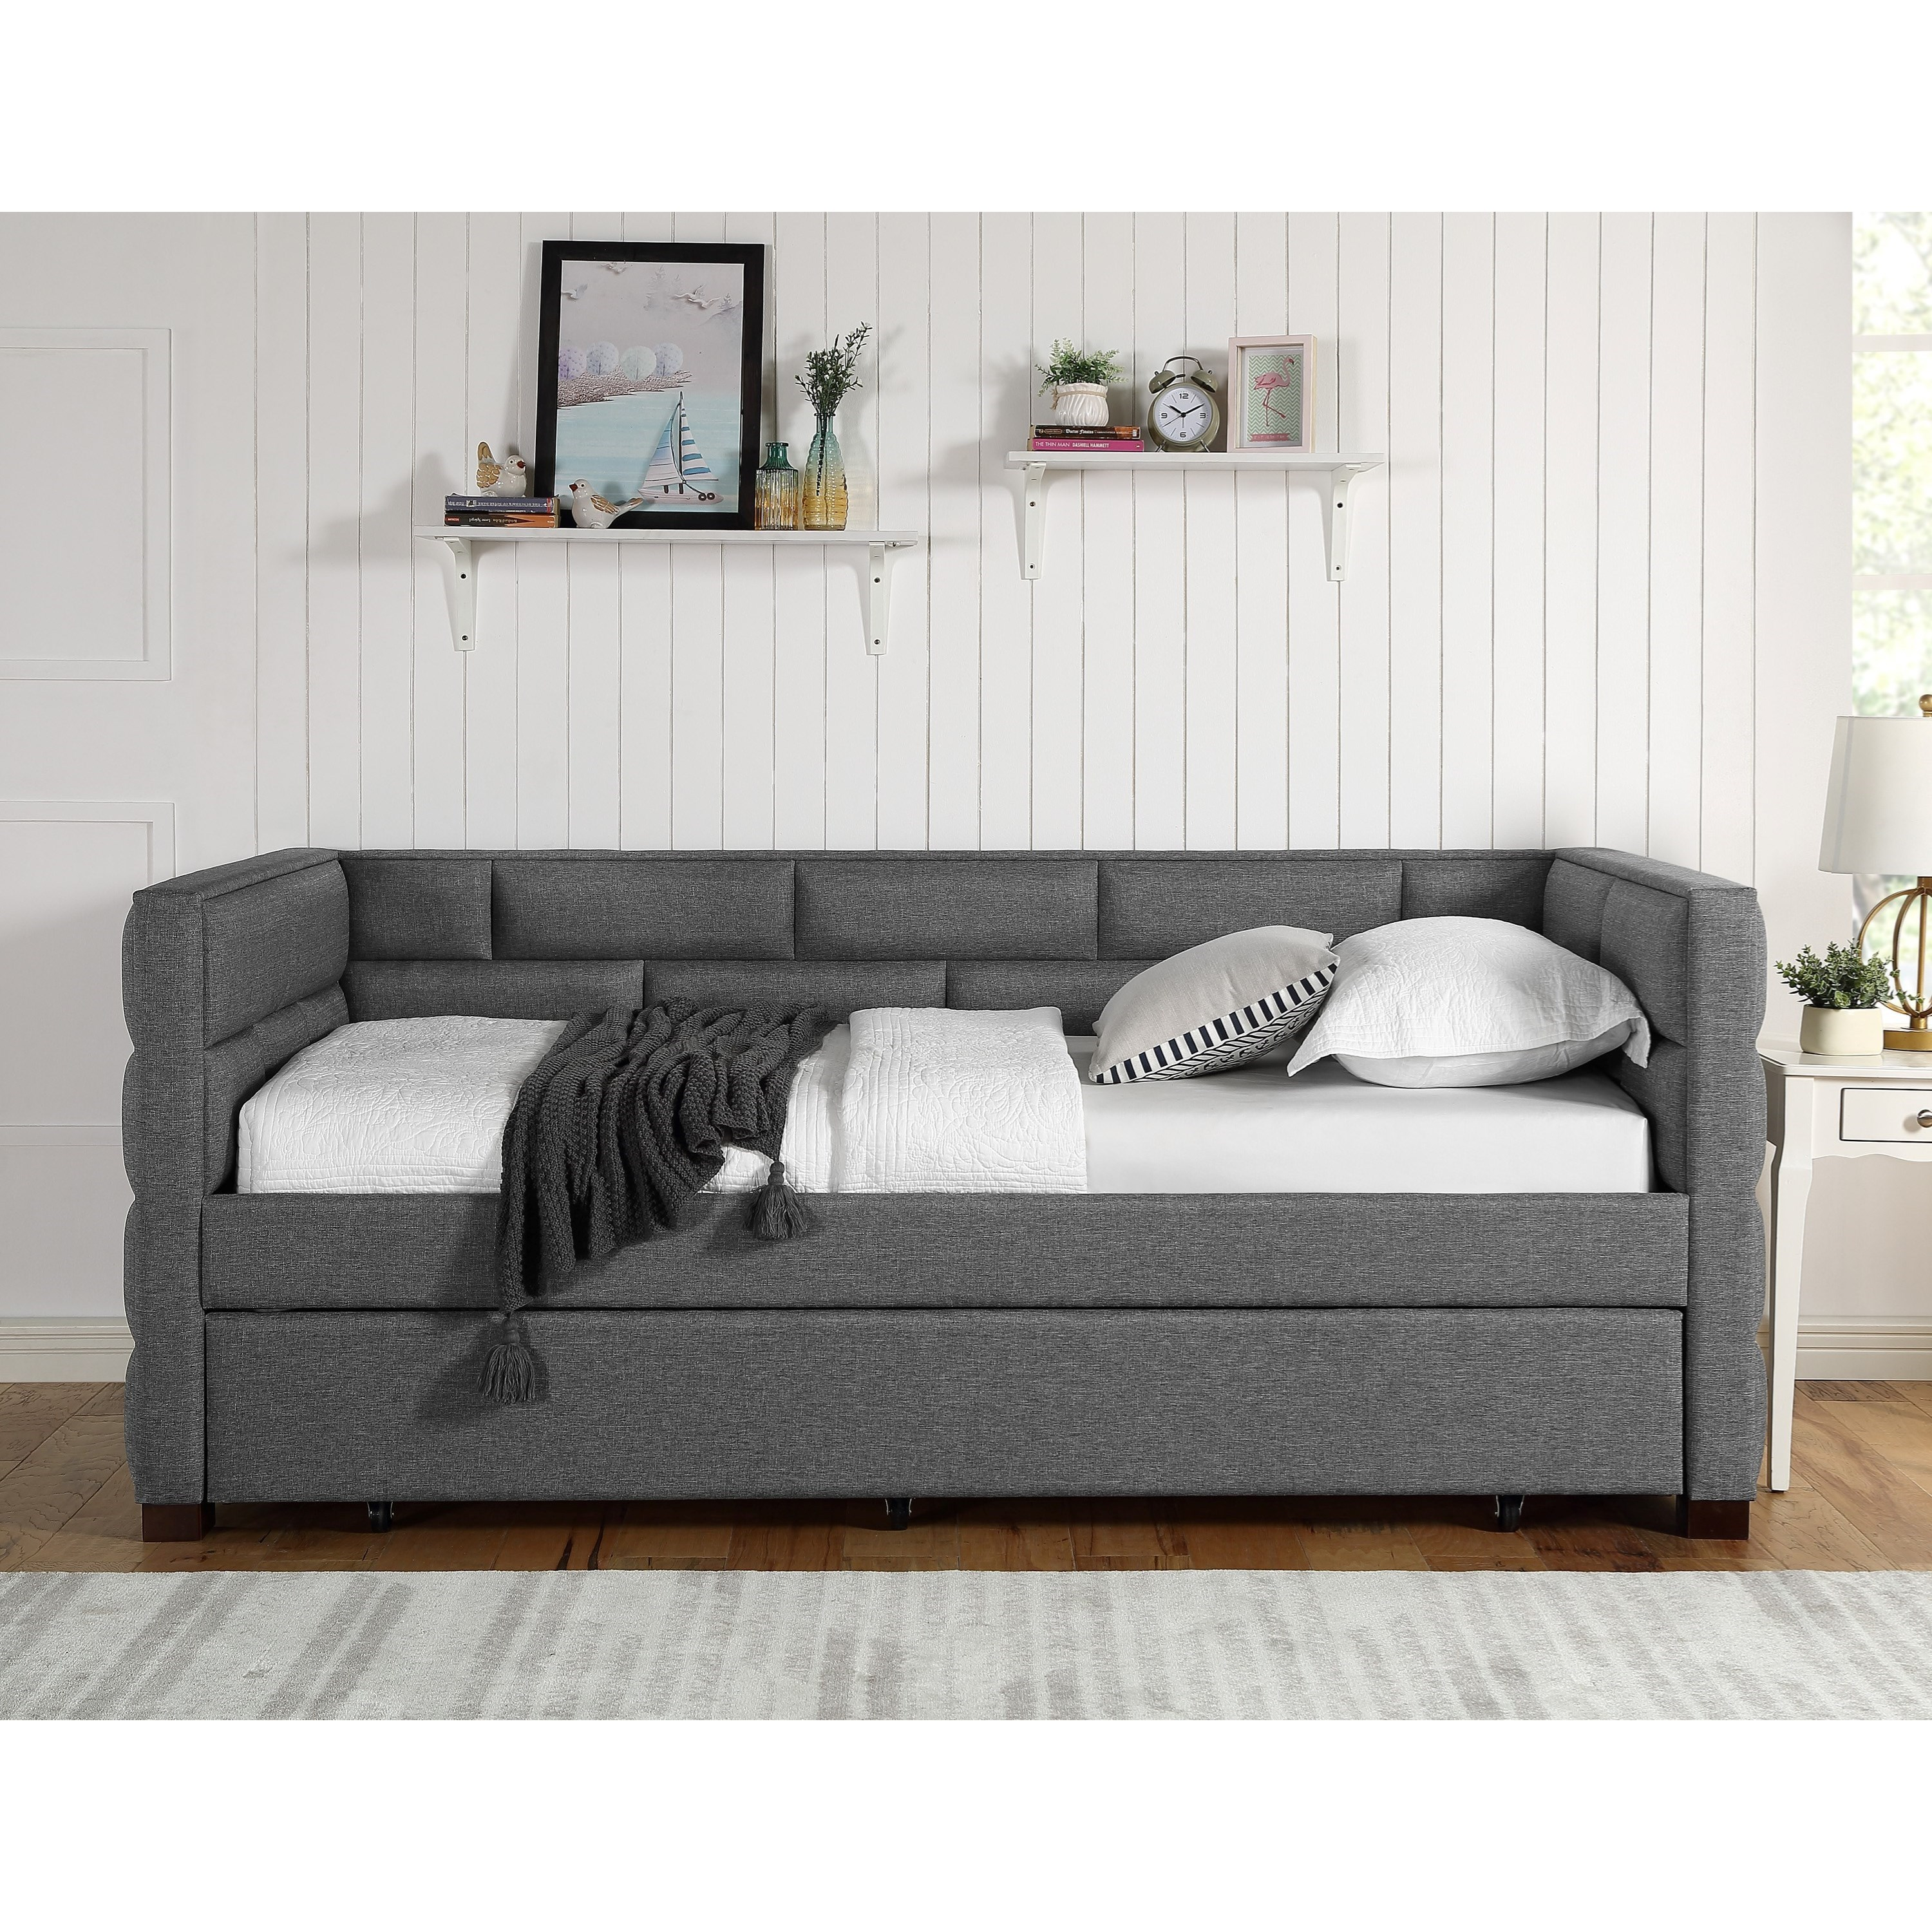 Picture of: Crown Mark Flannery Contemporary Upholstered Daybed With Pull Out Trundle Bed Royal Furniture Daybeds